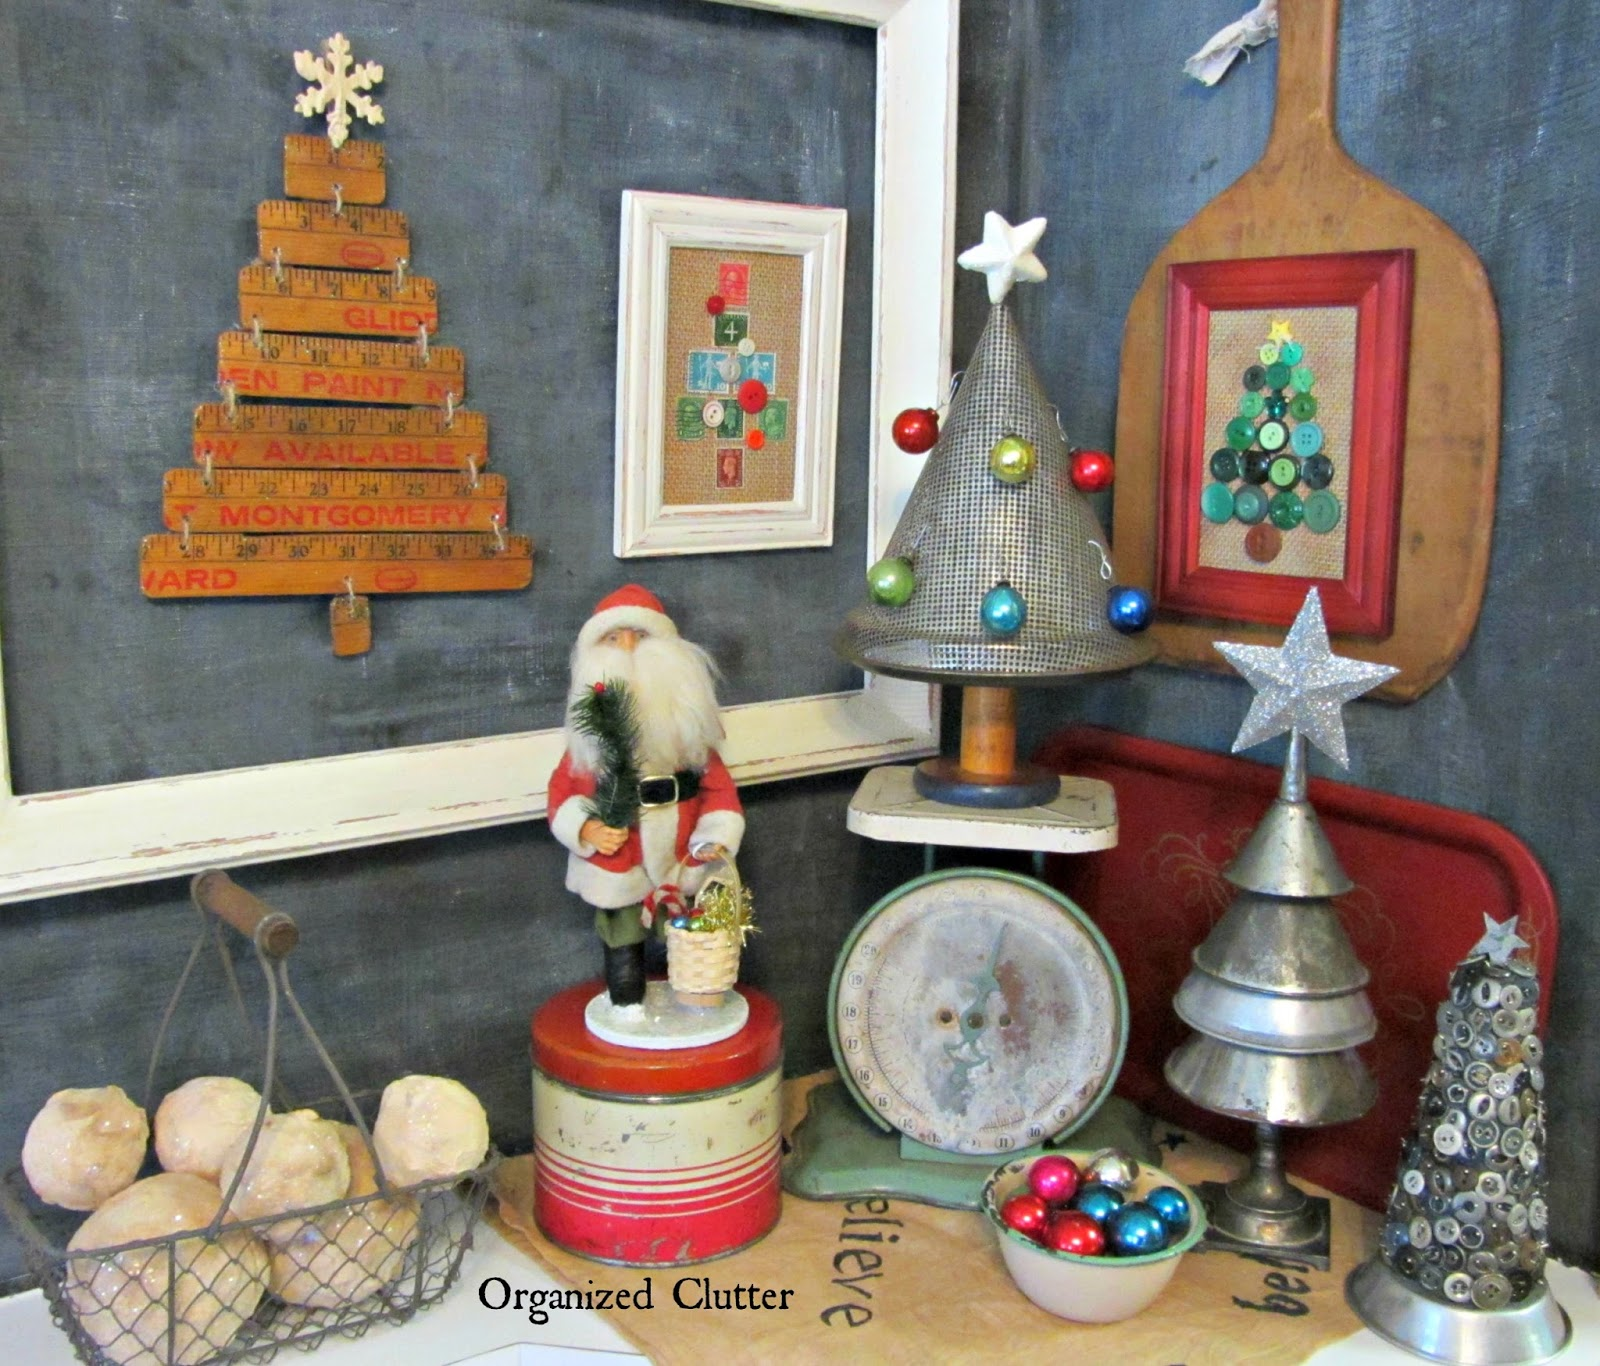 Re-Purposed Alternative Christmas Tree Vignette www.organizedclutterqueen.blogspot.com